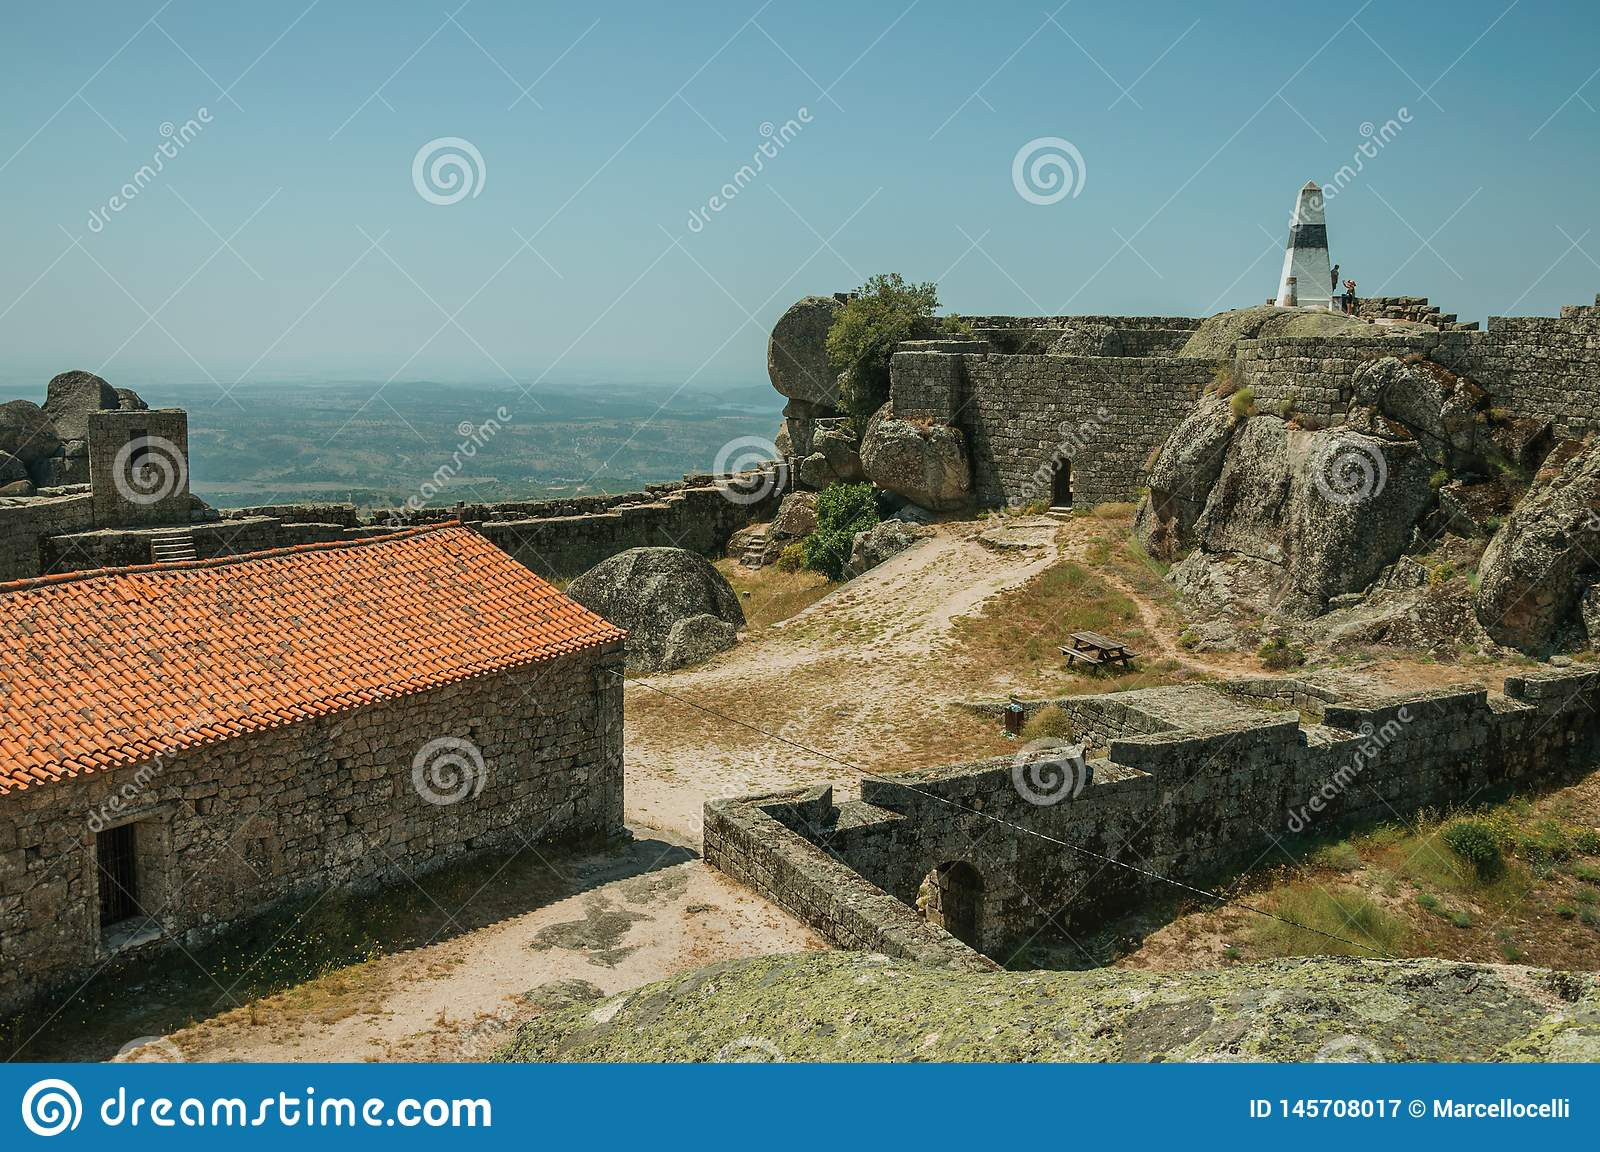 Stone walls encircling an old chapel at the Castle of Monsanto